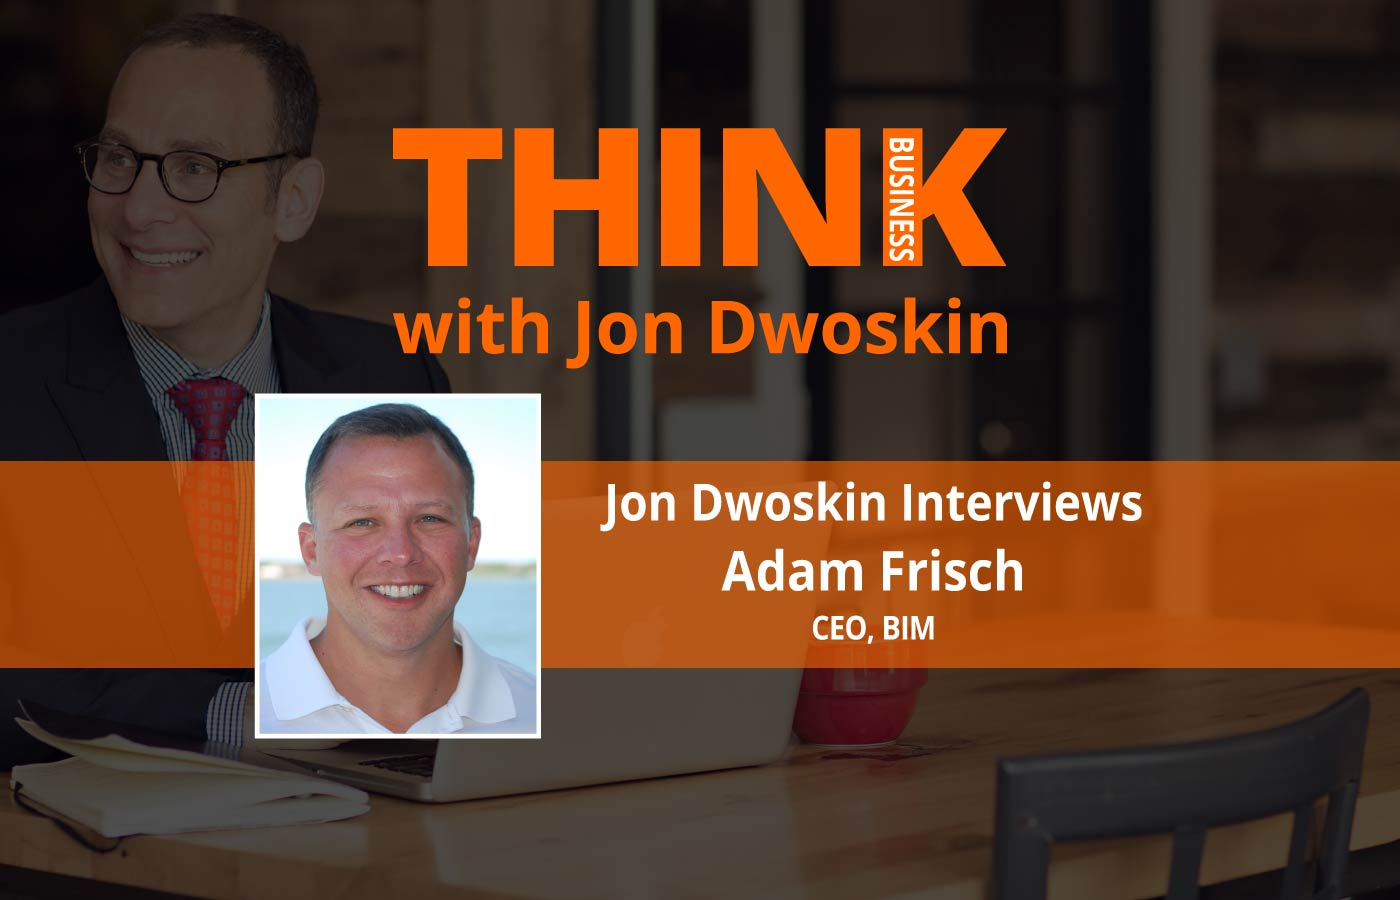 THINK Business Podcast: Jon Dwoskin Interviews Adam Frisch, CEO of BIM